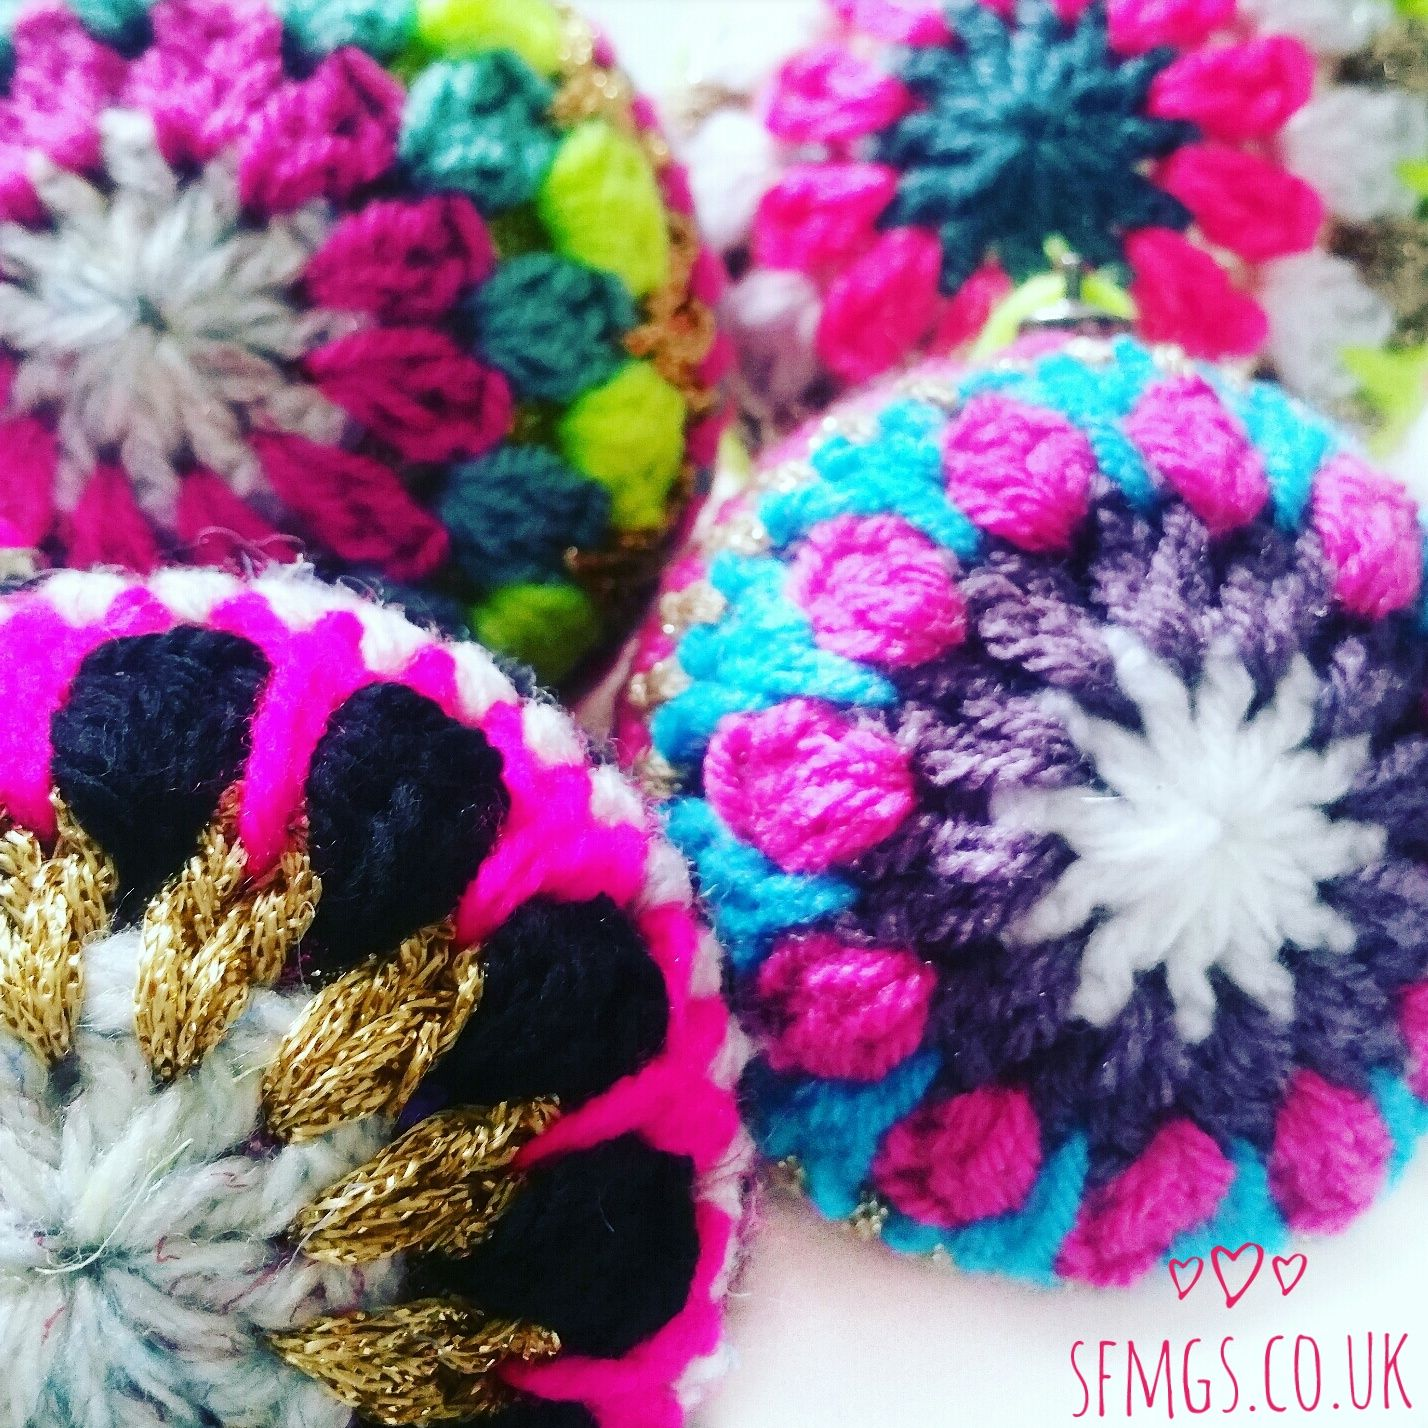 Crochet christmas bauble decorations free crochet pattern crochet christmas bauble decorations free crochet pattern upcycle tired old christmas baubles quickly and bankloansurffo Choice Image